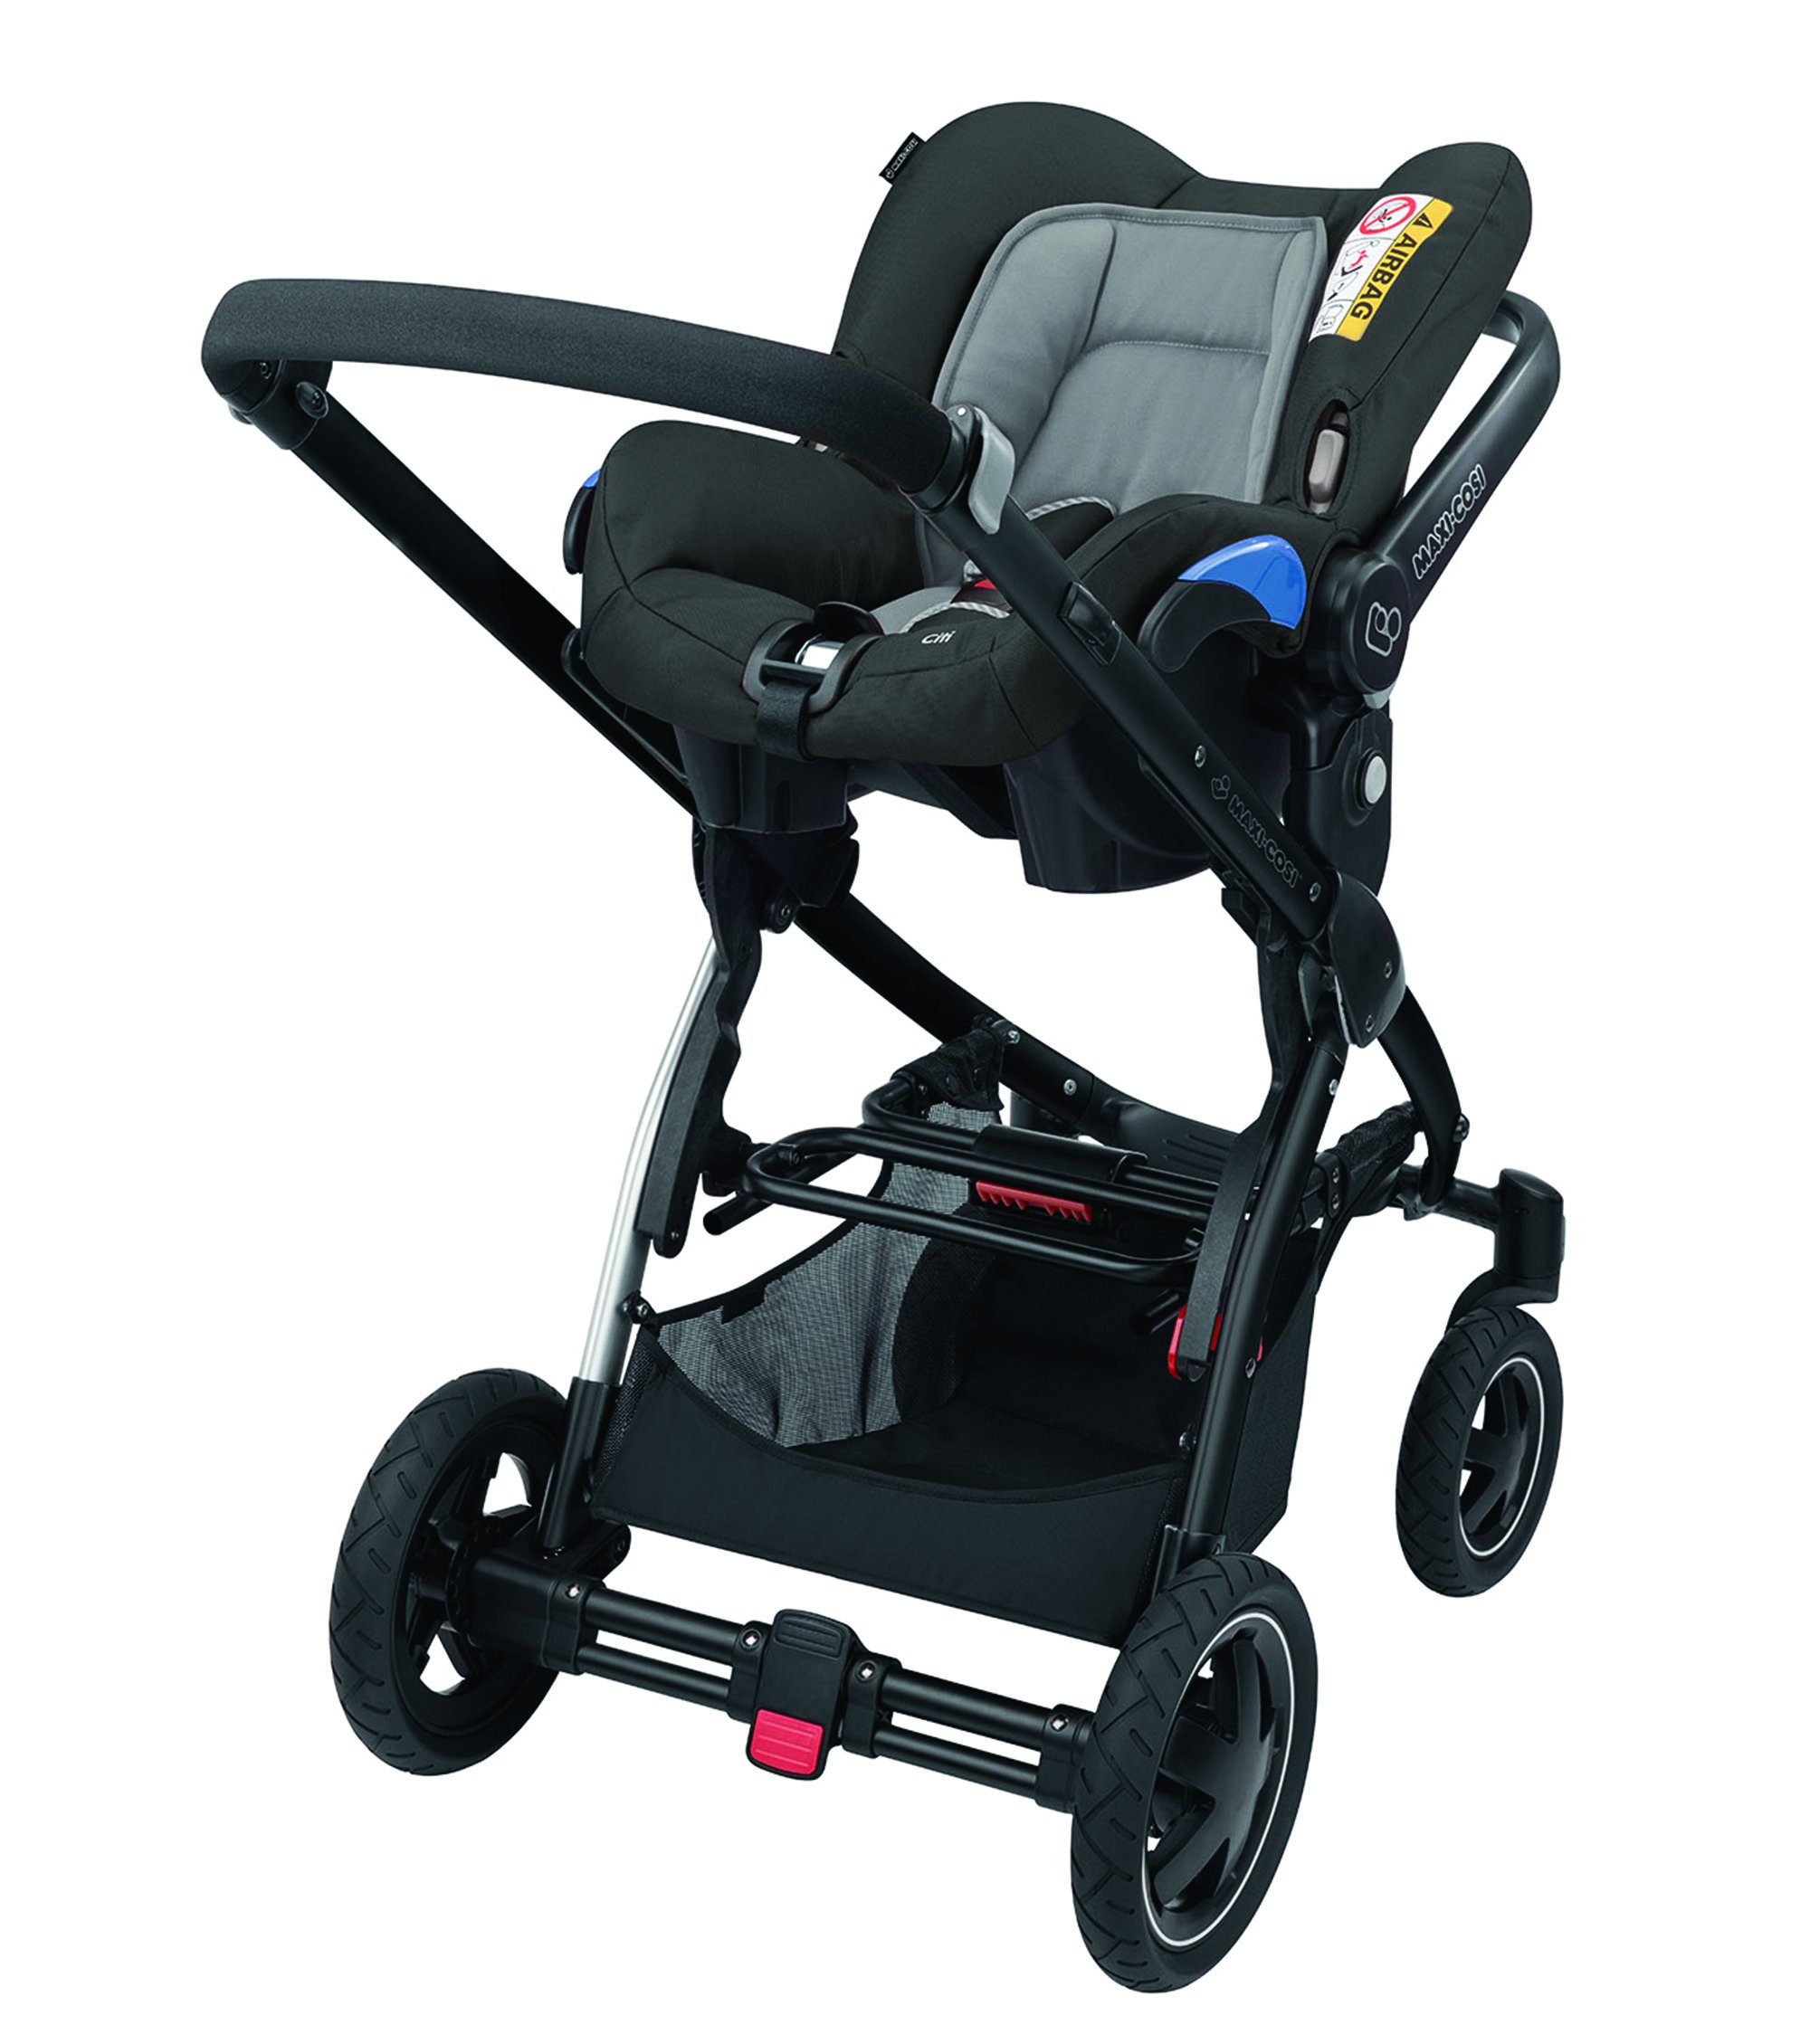 Maxi-Cosi Kinderautositz Citi Concrete Grey Maxi-Cosi Side protection system, guarantees optimal protection in the event of a side impact Lightweight, light weight and ergonomically shaped safety bar for use as carrying handle Practical travel system 10